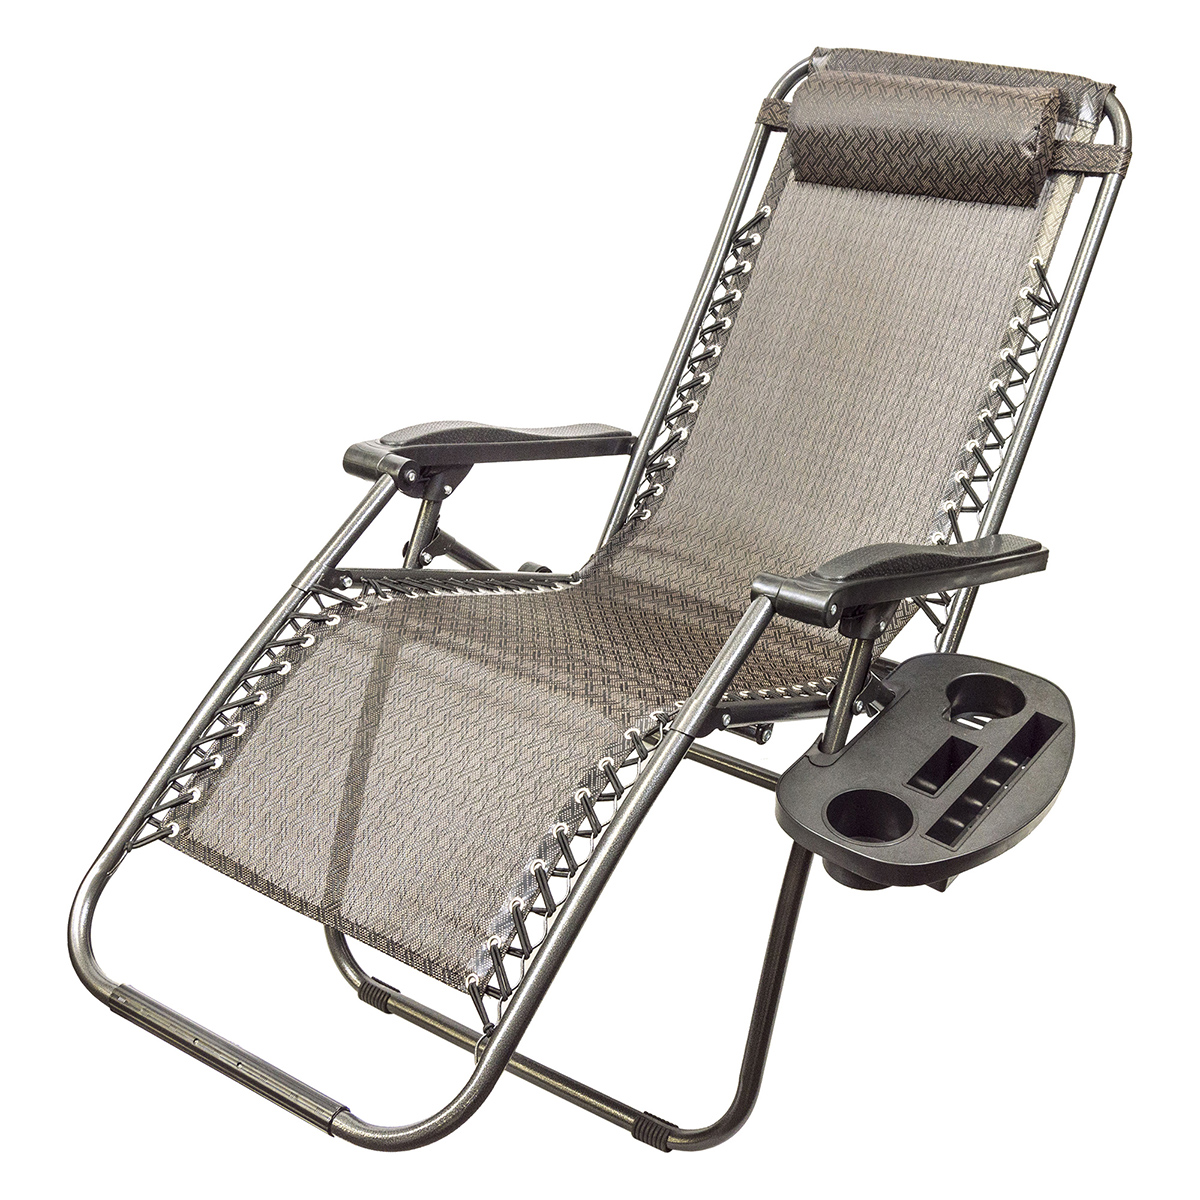 Zero Gravity Folding Patio Chair with Drink Holder